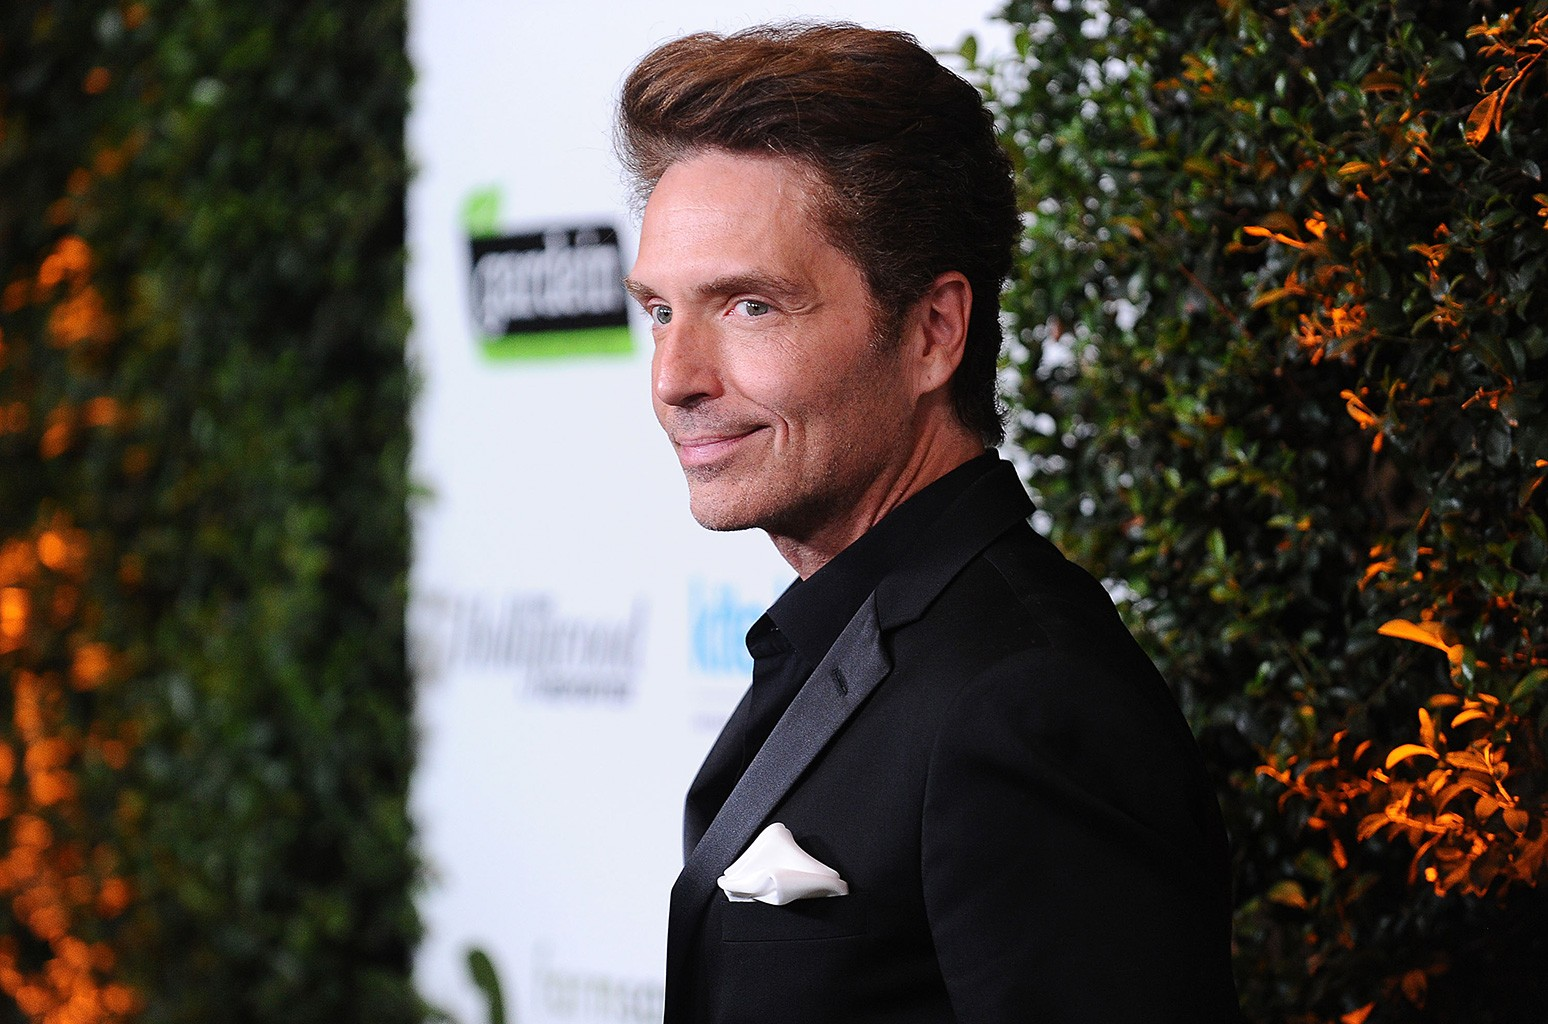 Richard Marx attends Farm Sanctuary's 30th anniversary gala at the Beverly Wilshire Four Seasons Hotel on Nov. 12, 2016 in Beverly Hills, Calif.